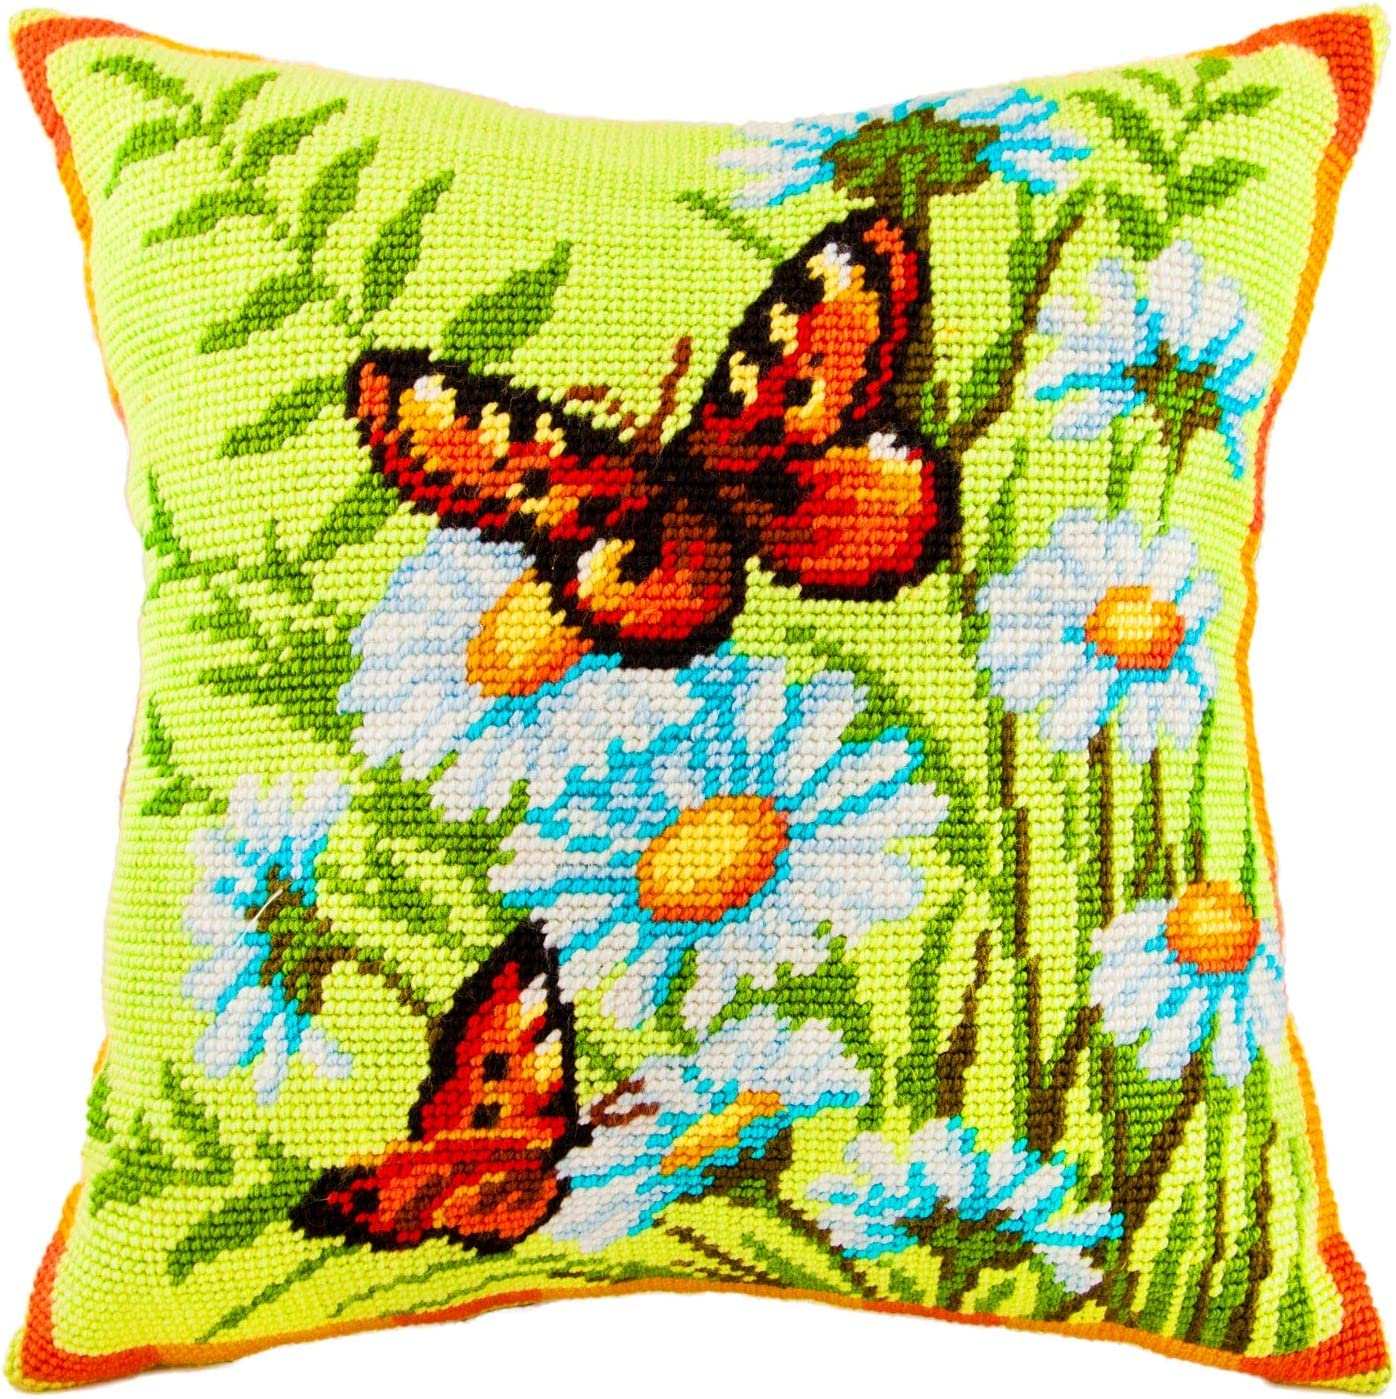 Throw Pillow 16/×16 Inches Daisies and Turquoise Printed Tapestry Canvas European Quality Needlepoint Kit